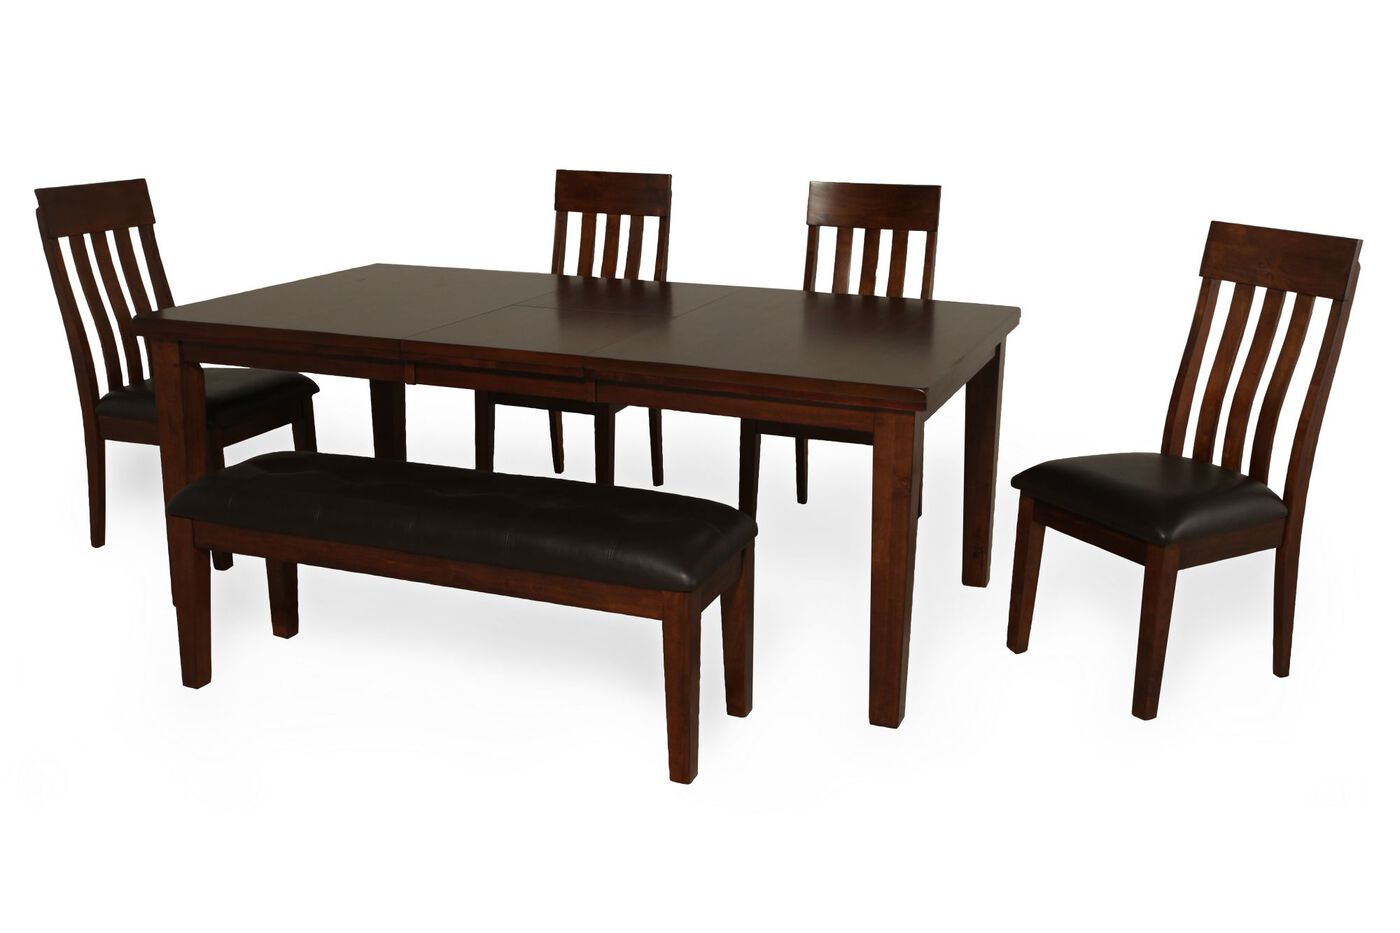 Six piece casual dining set in brown mathis brothers for Casual kitchen dining